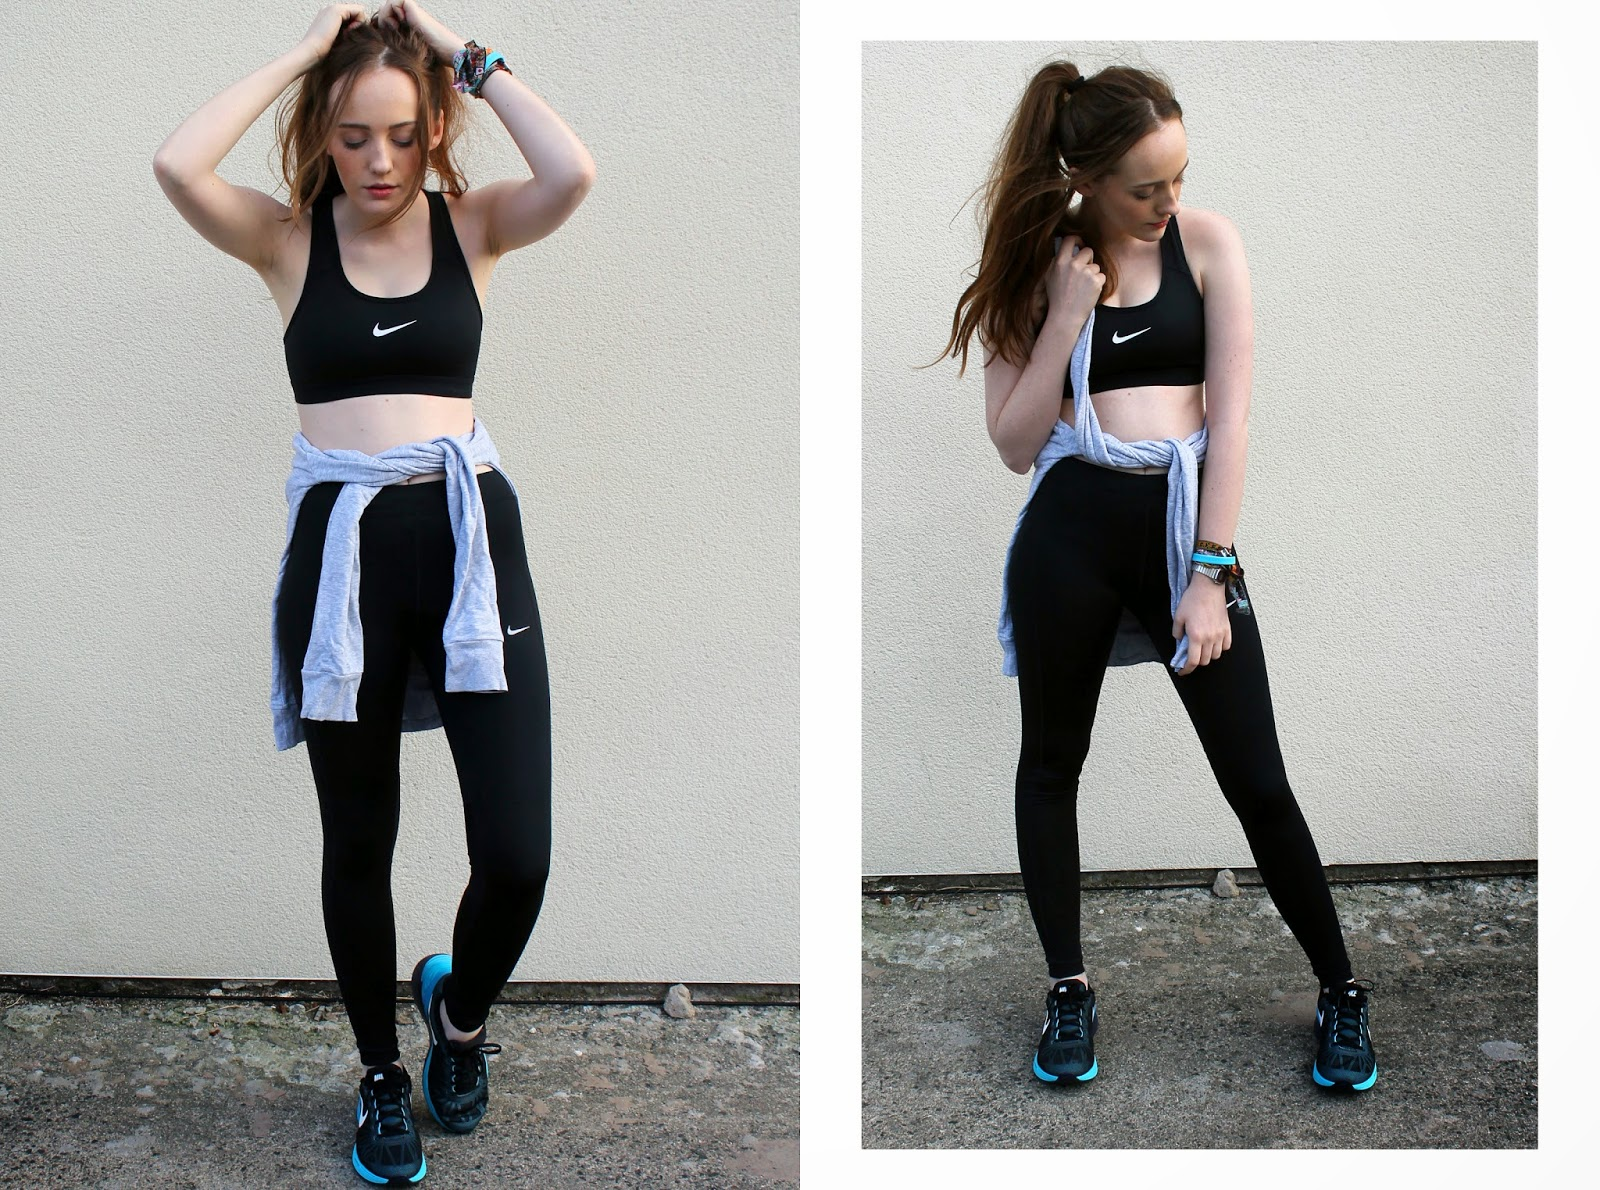 nike sports bra and leggings from JD sports, nike lunar glide blue and black trainers from millets